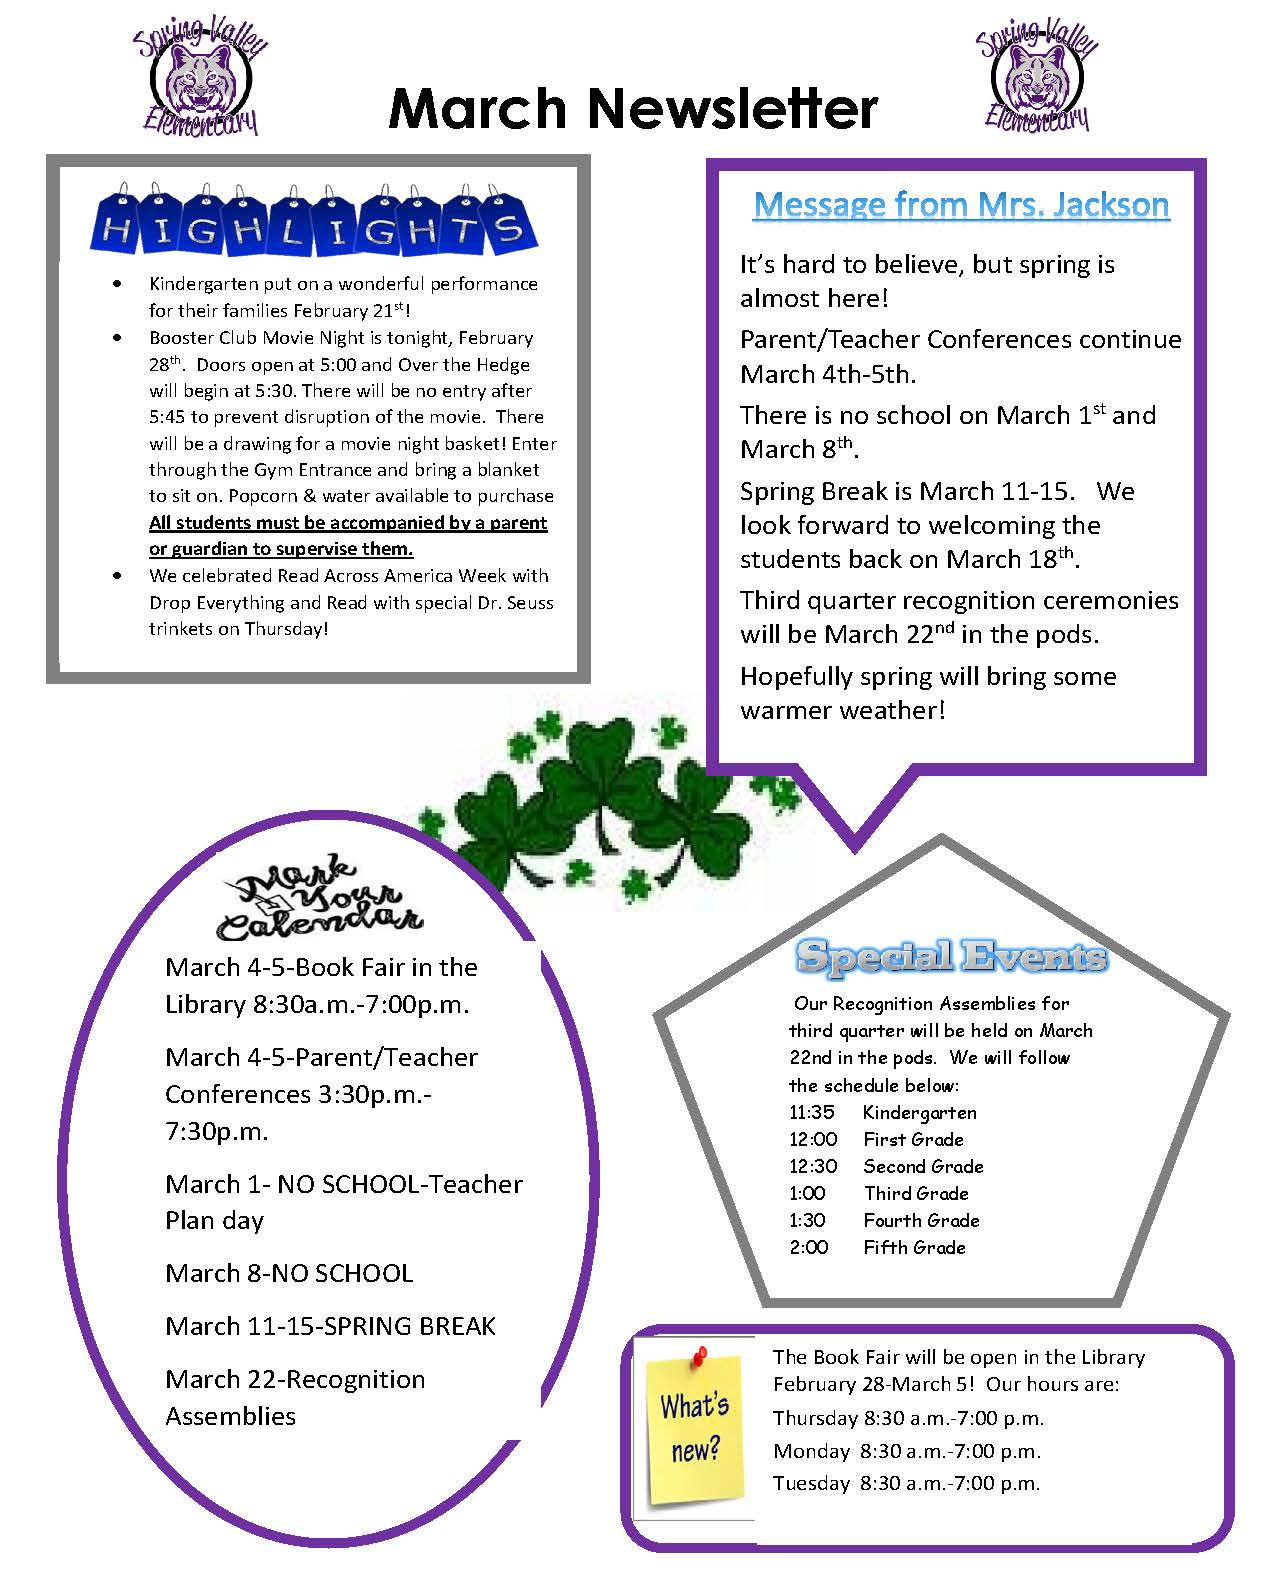 picture of March newsletter